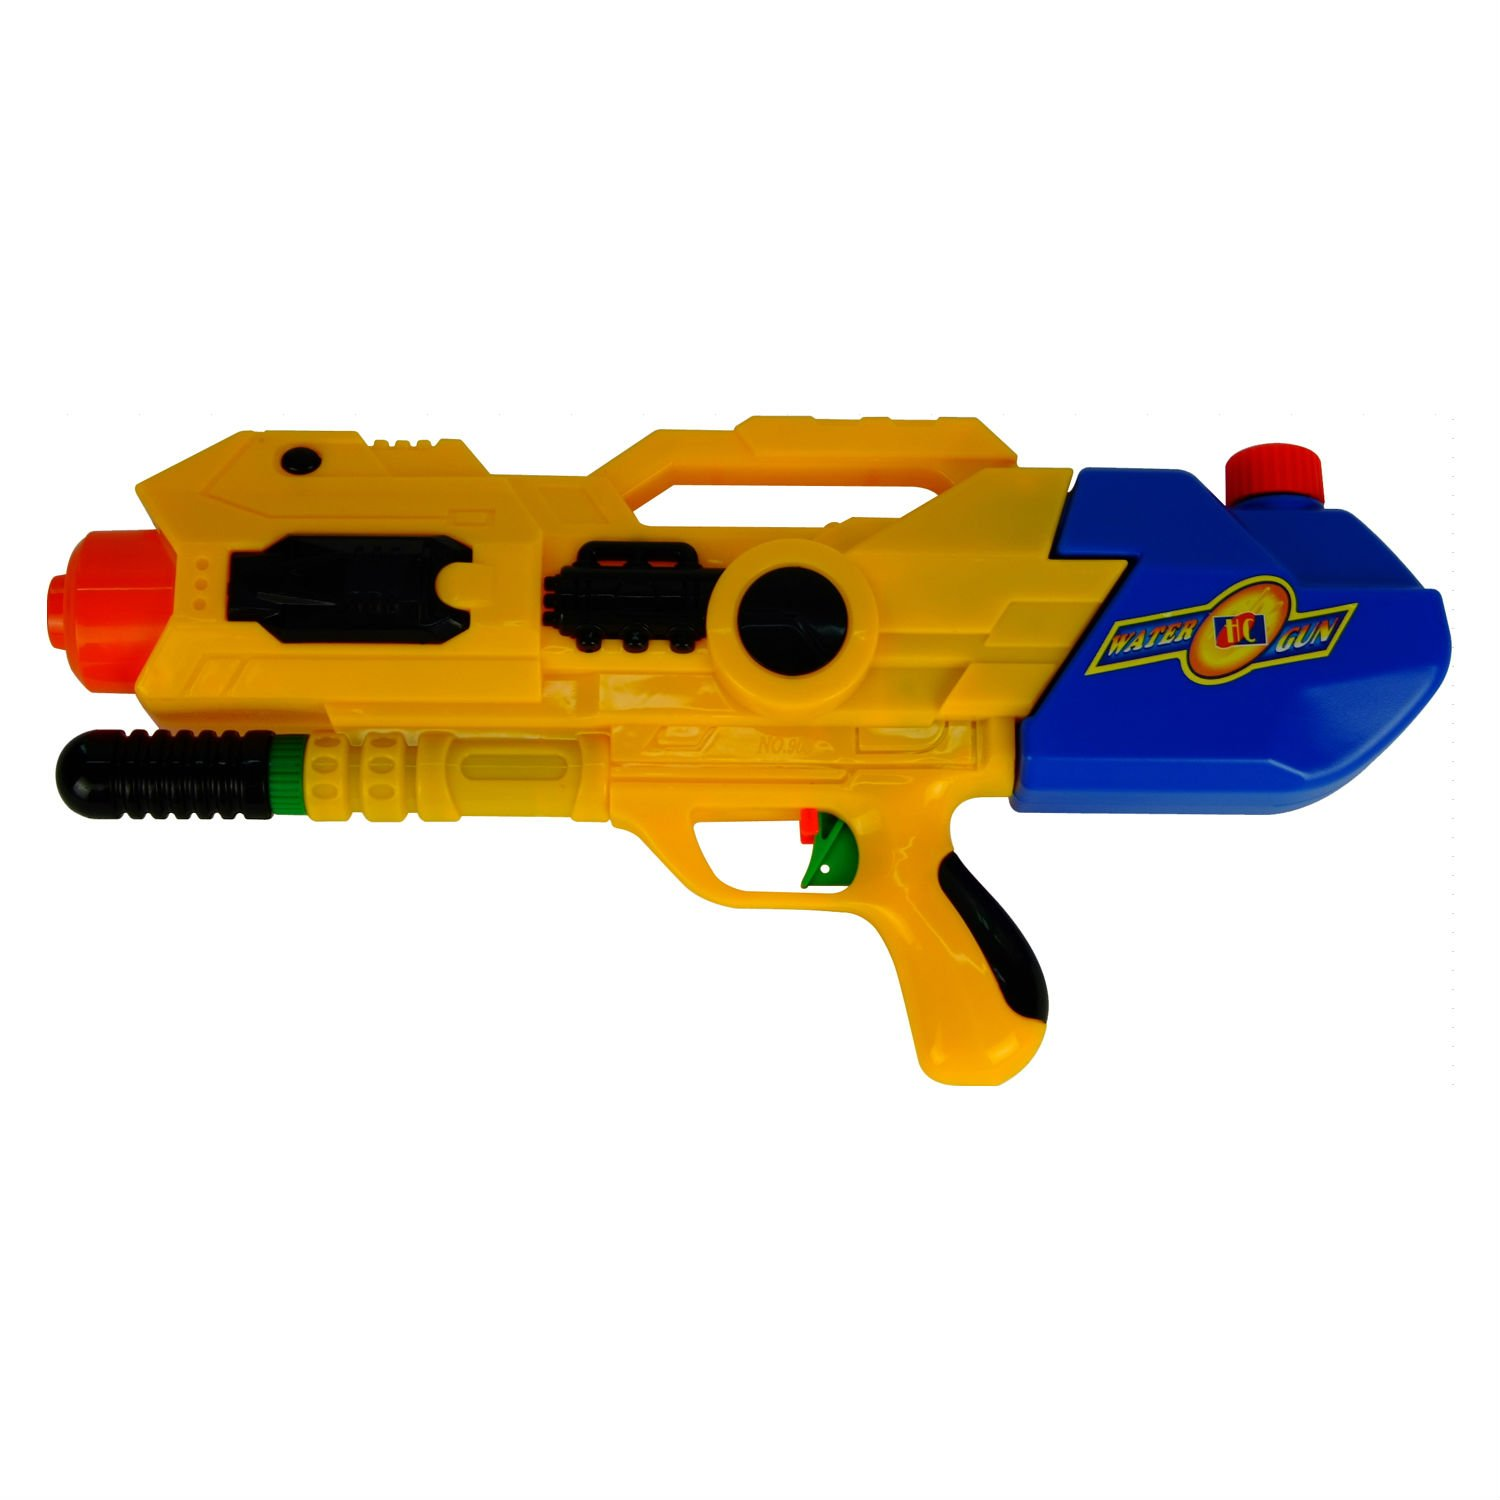 BSR Squirt Guns, Nozzle Squirt Water Shooters Air Pressure Water Gun Toy for Kids